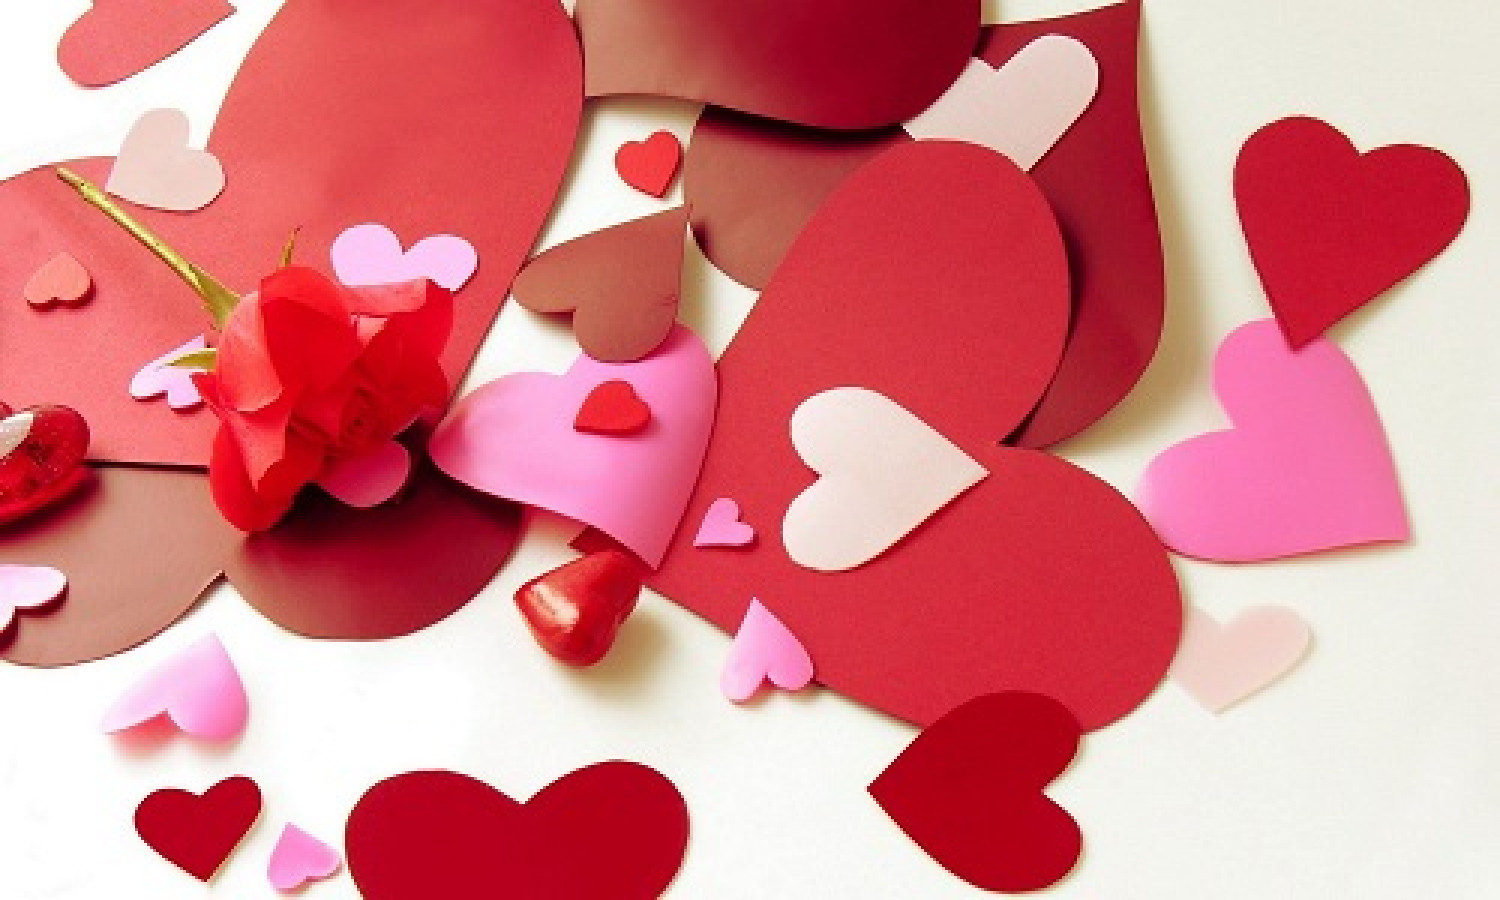 Wazifa For Love Back - Wazifa To Get Back Lost Love Infographic